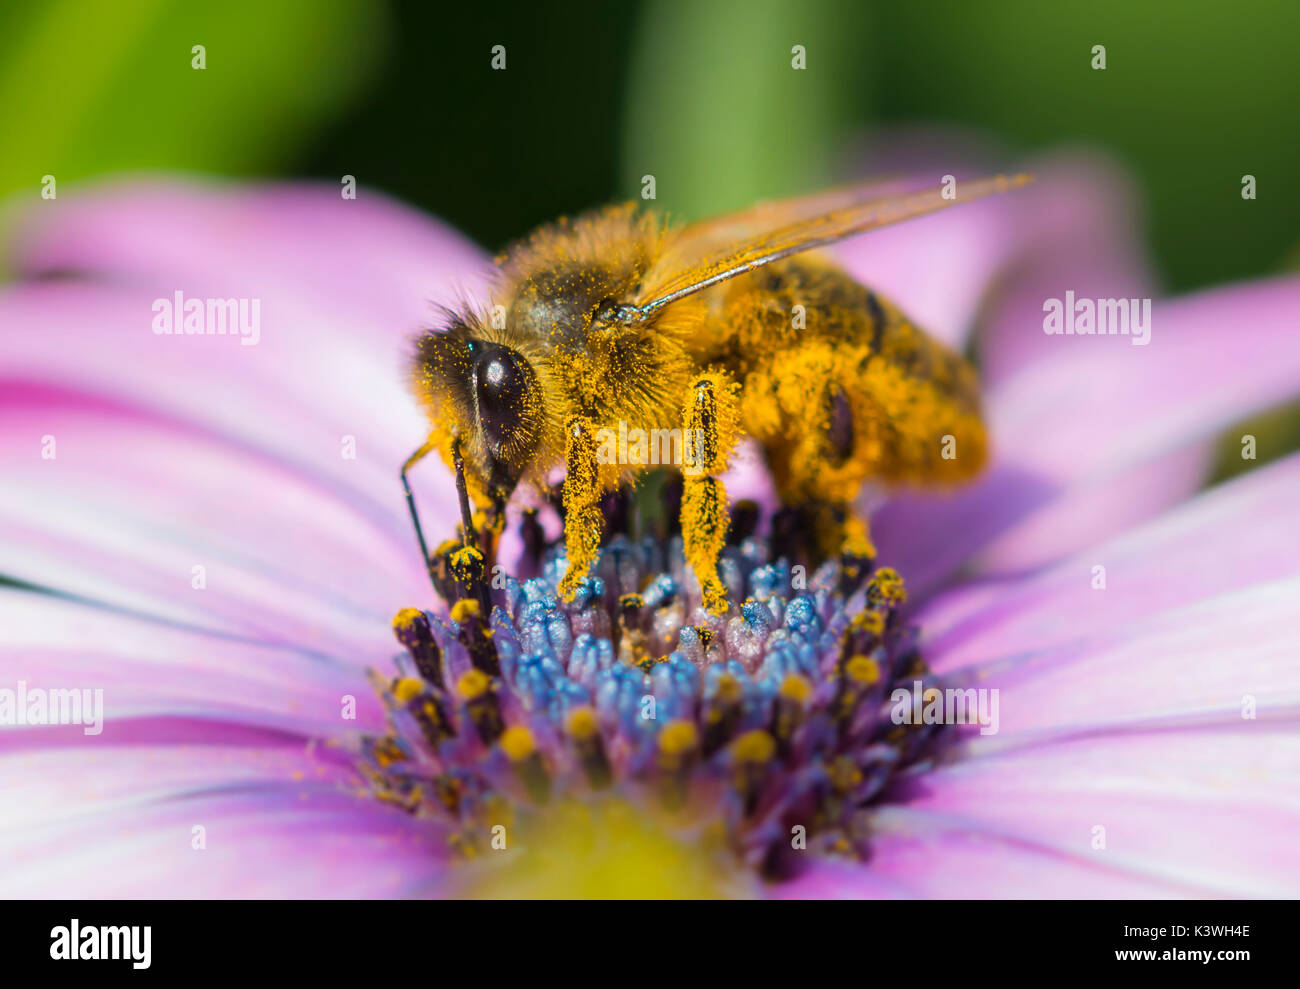 European Honey Bee (Apis mellifera) on a Osteospermum ecklonis (African daisy) pollinating the flower in Sussex, - Stock Image